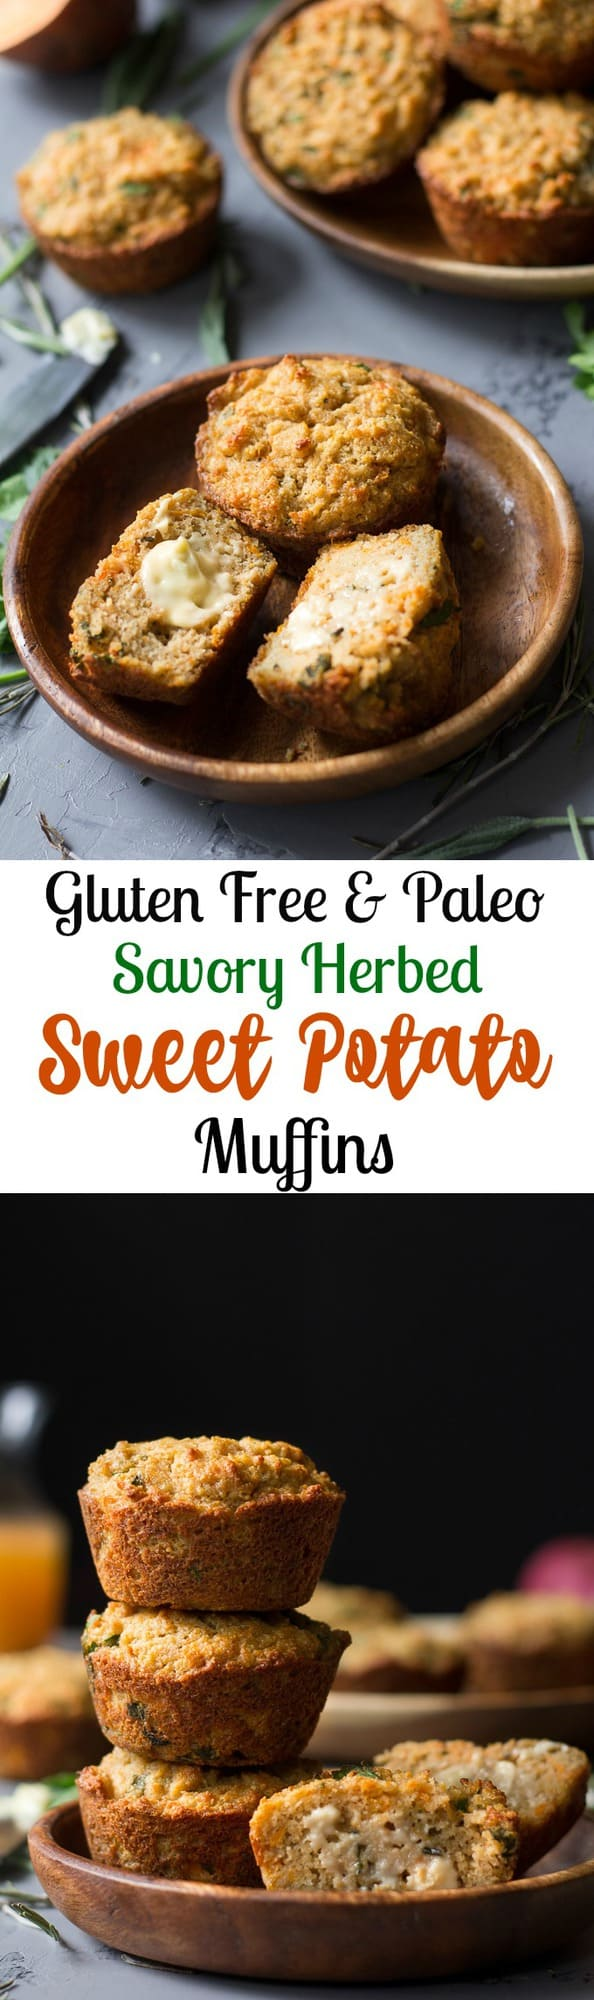 paleo-savory-herbed-sweet-potato-muffins